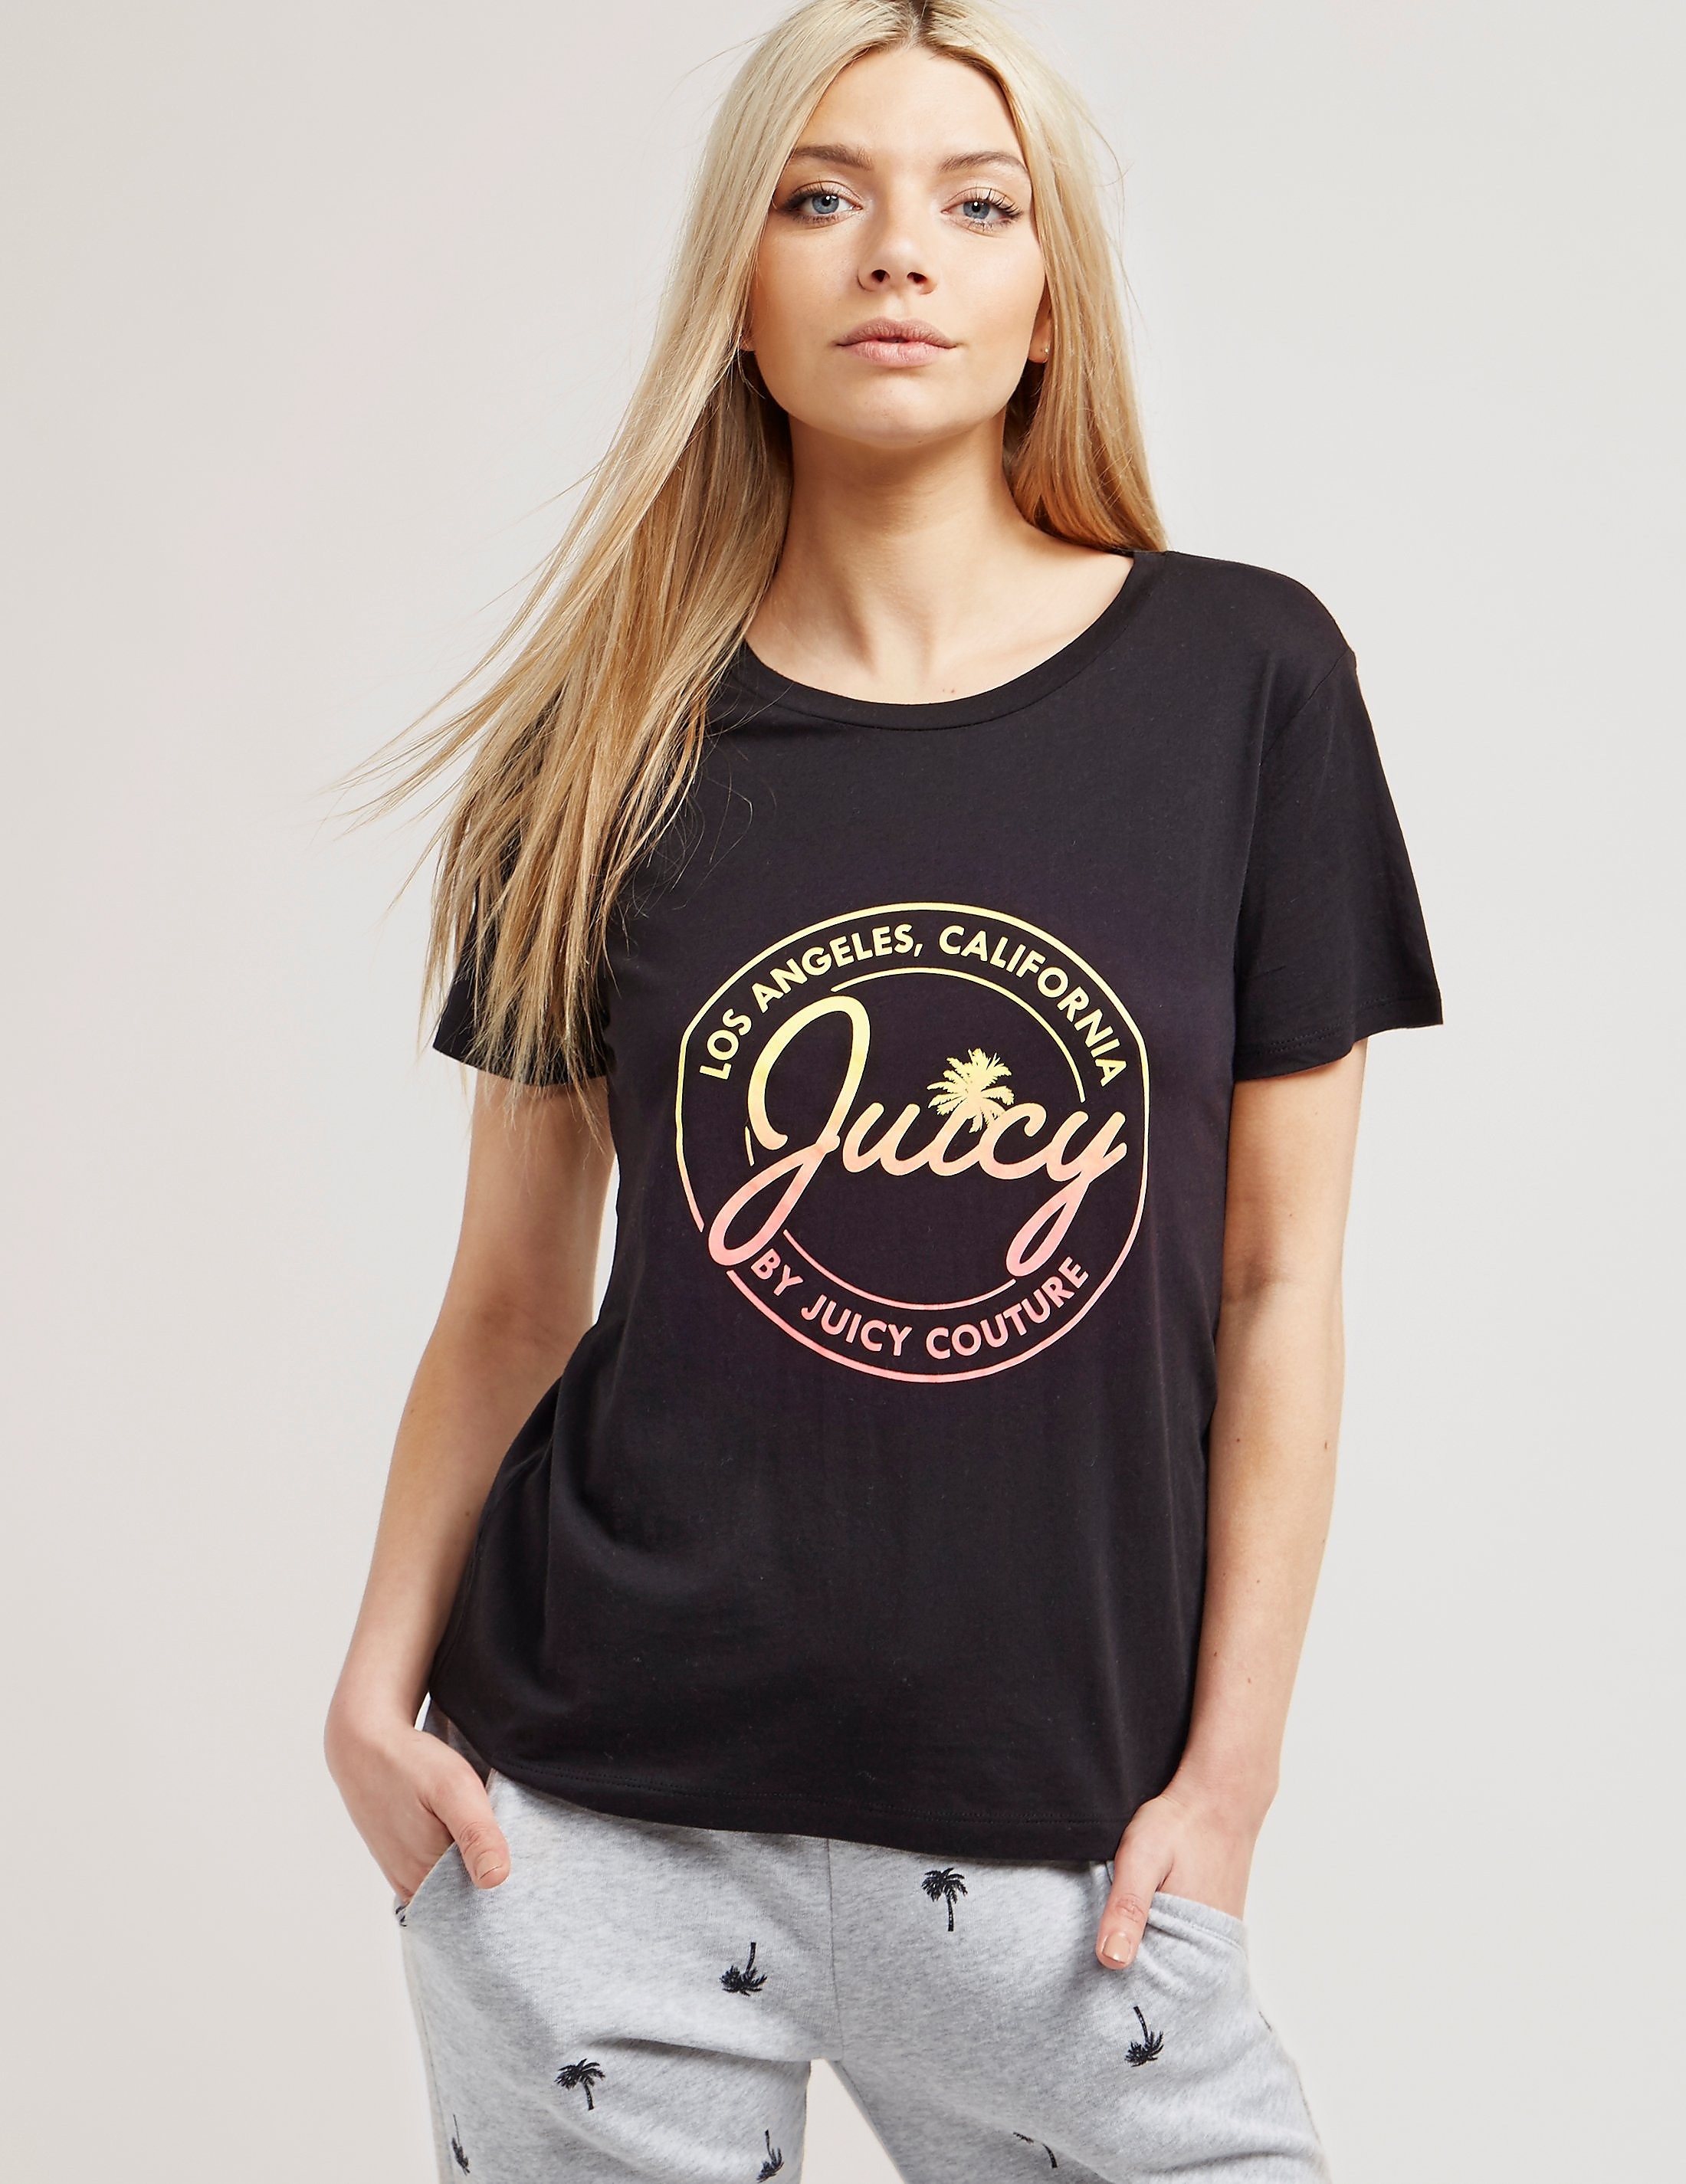 Juicy Couture Short Sleeve Ombre Logo TShirt